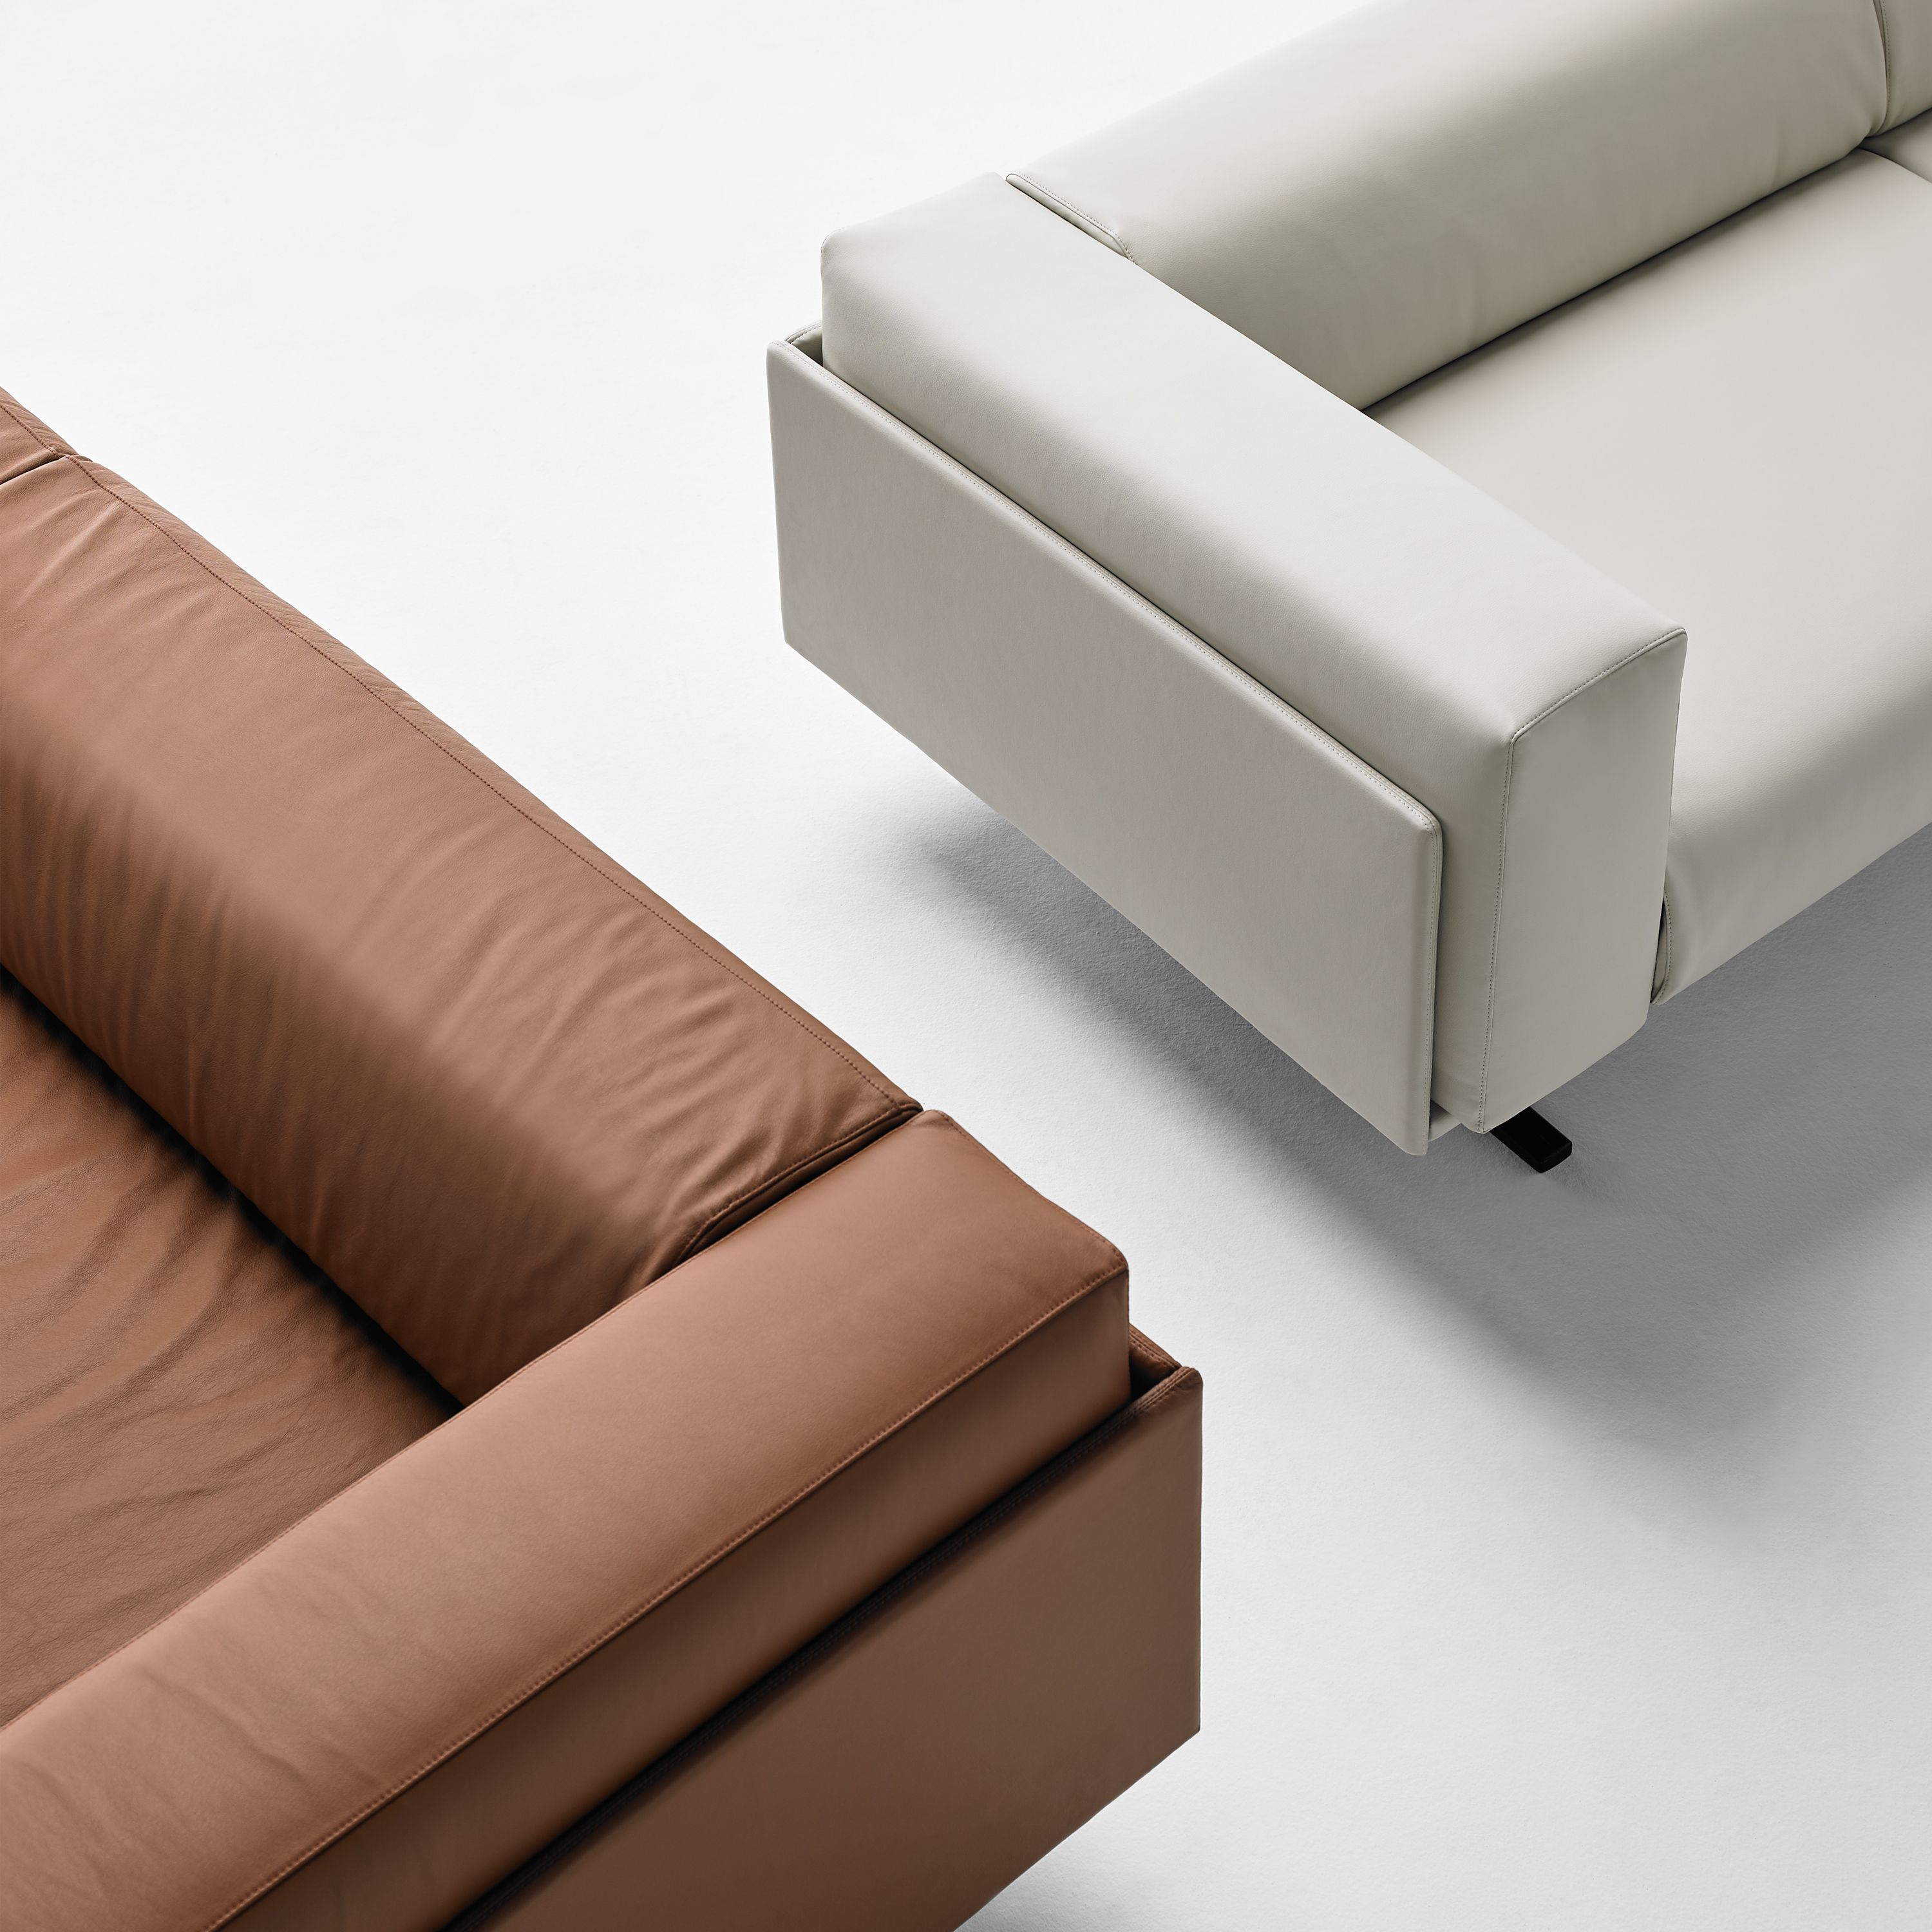 The Marcus Collection Comprises Sofas In Four Sizes Hand Upholstered With Quality Materials Are Available All Fabrics And Leather